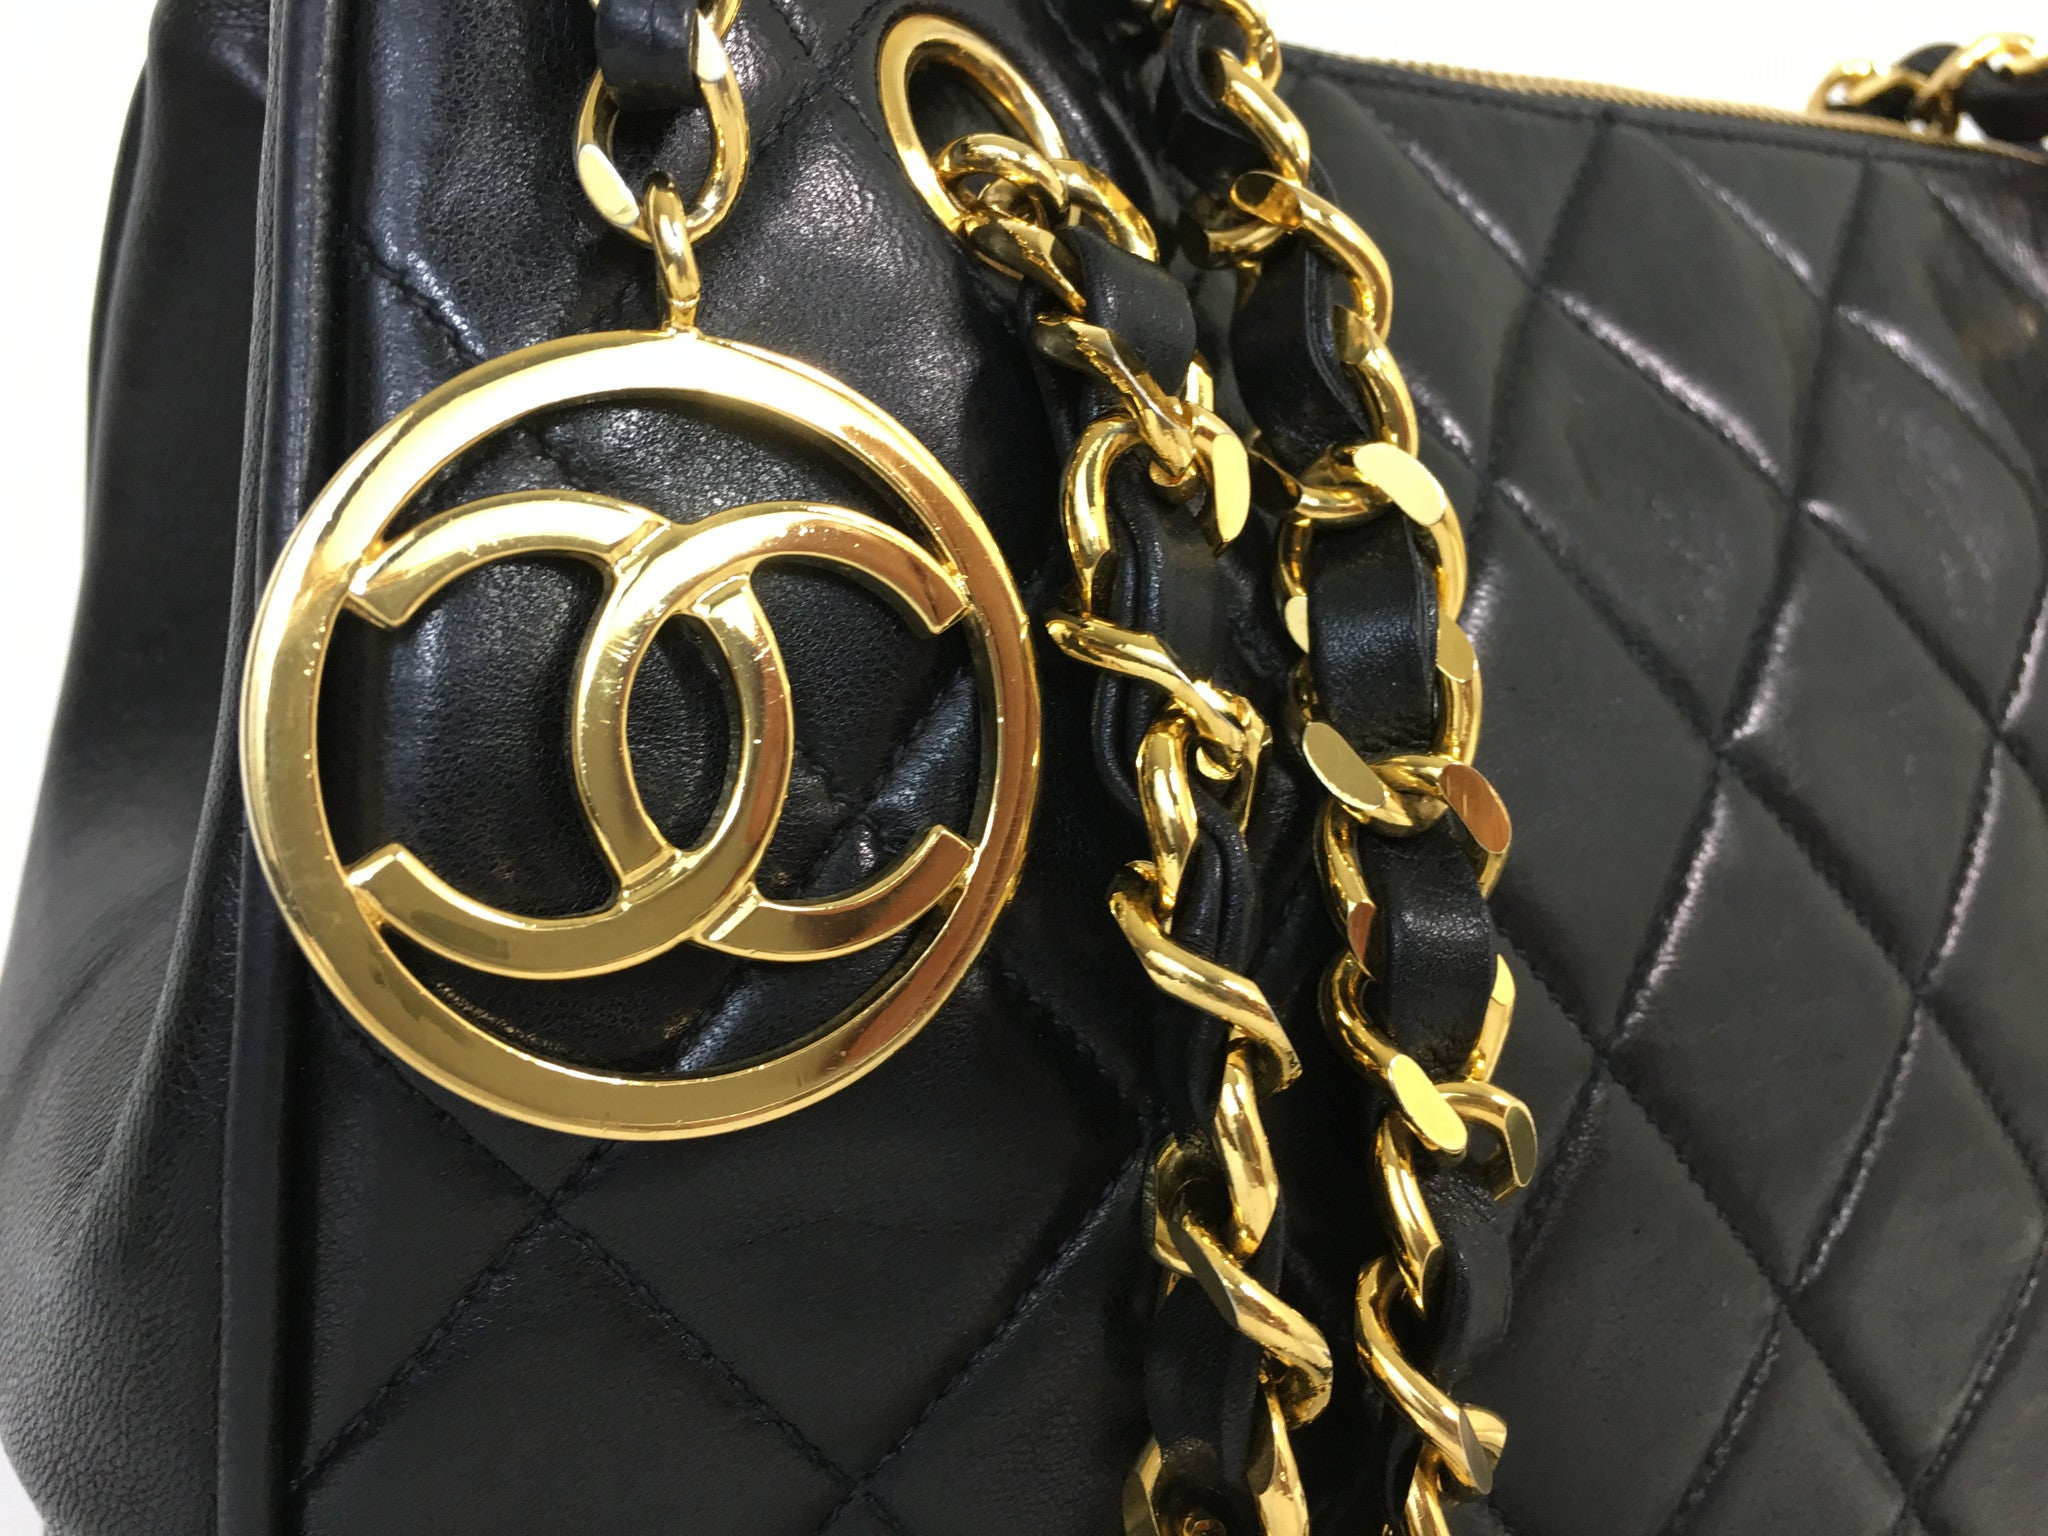 CHANEL Black Lambskin Quilted CC Charm Shoulder Bag